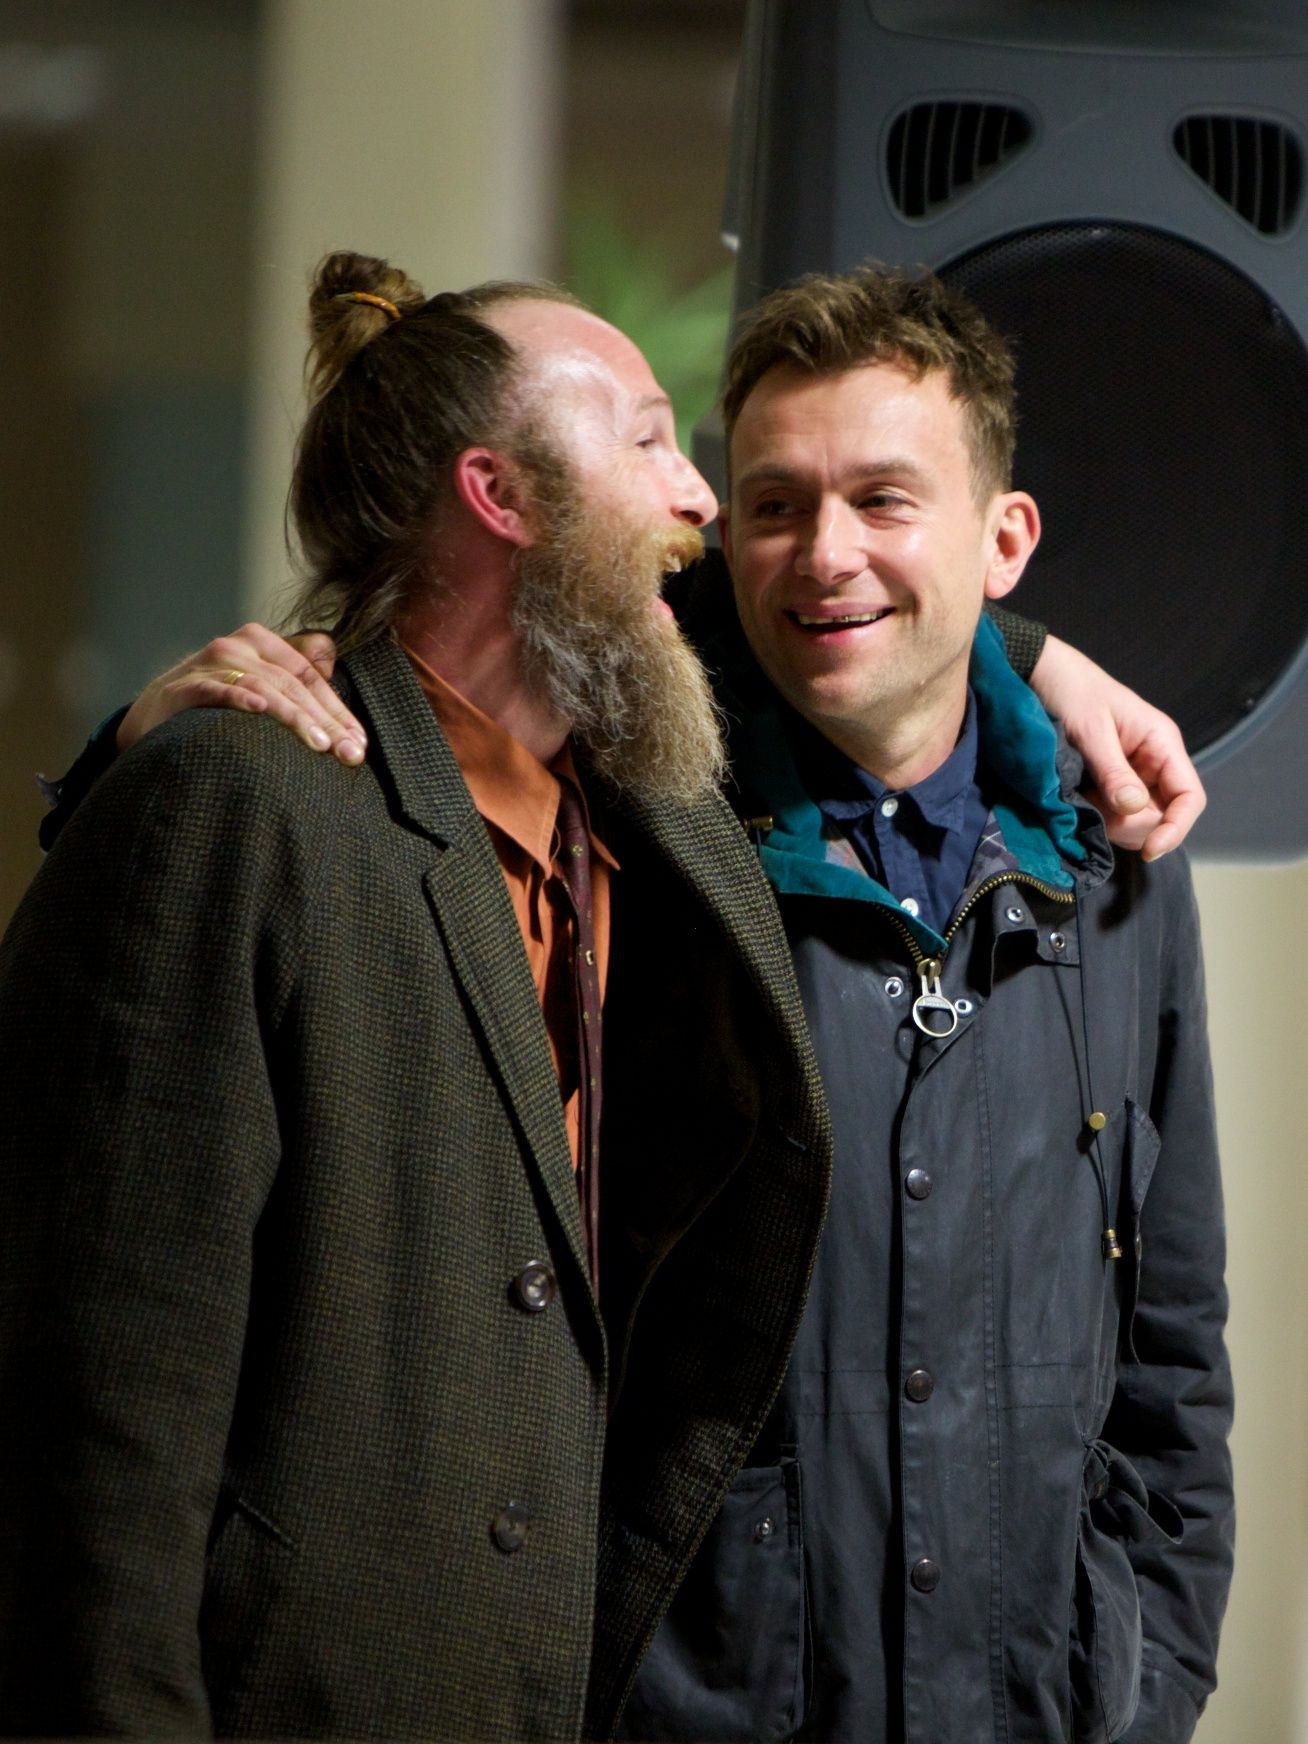 Alumnus Paul Kaye alongside Damon Albarn at #since1843 #inthemaking exhibition! Visit ntu170years.co.uk for more details